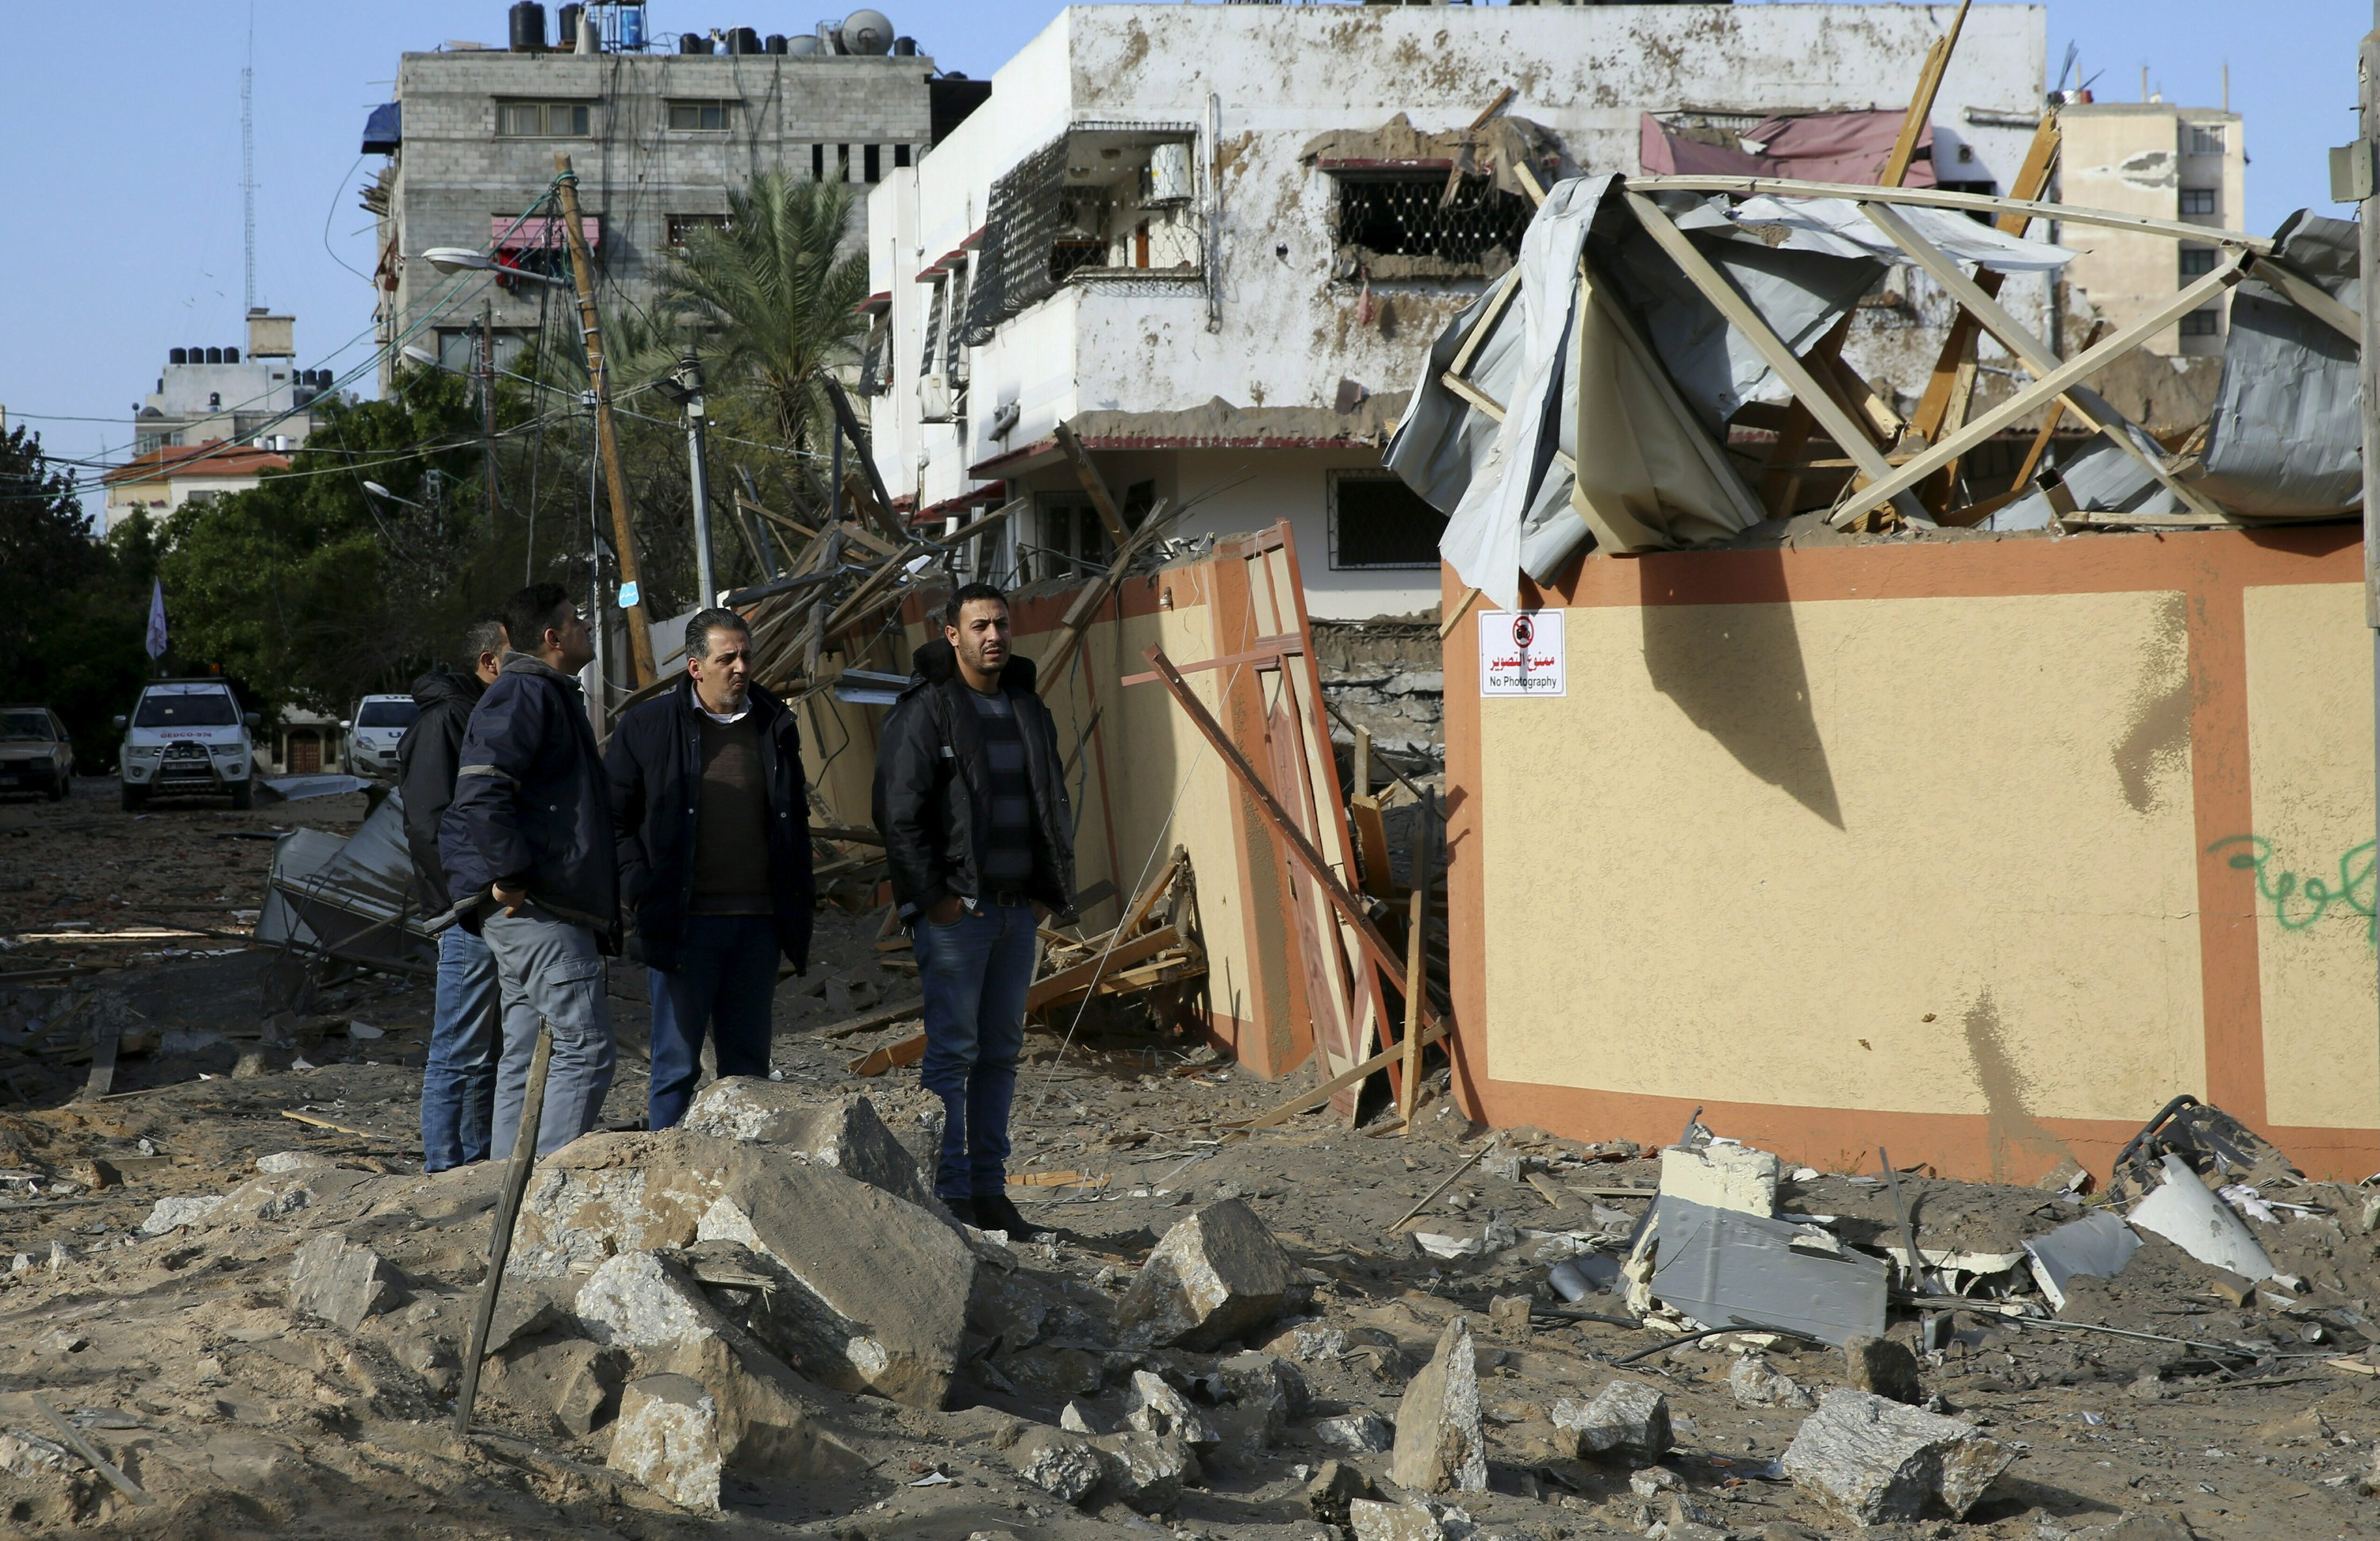 The Latest: Palestinian envoy to UN lashes out at Israel